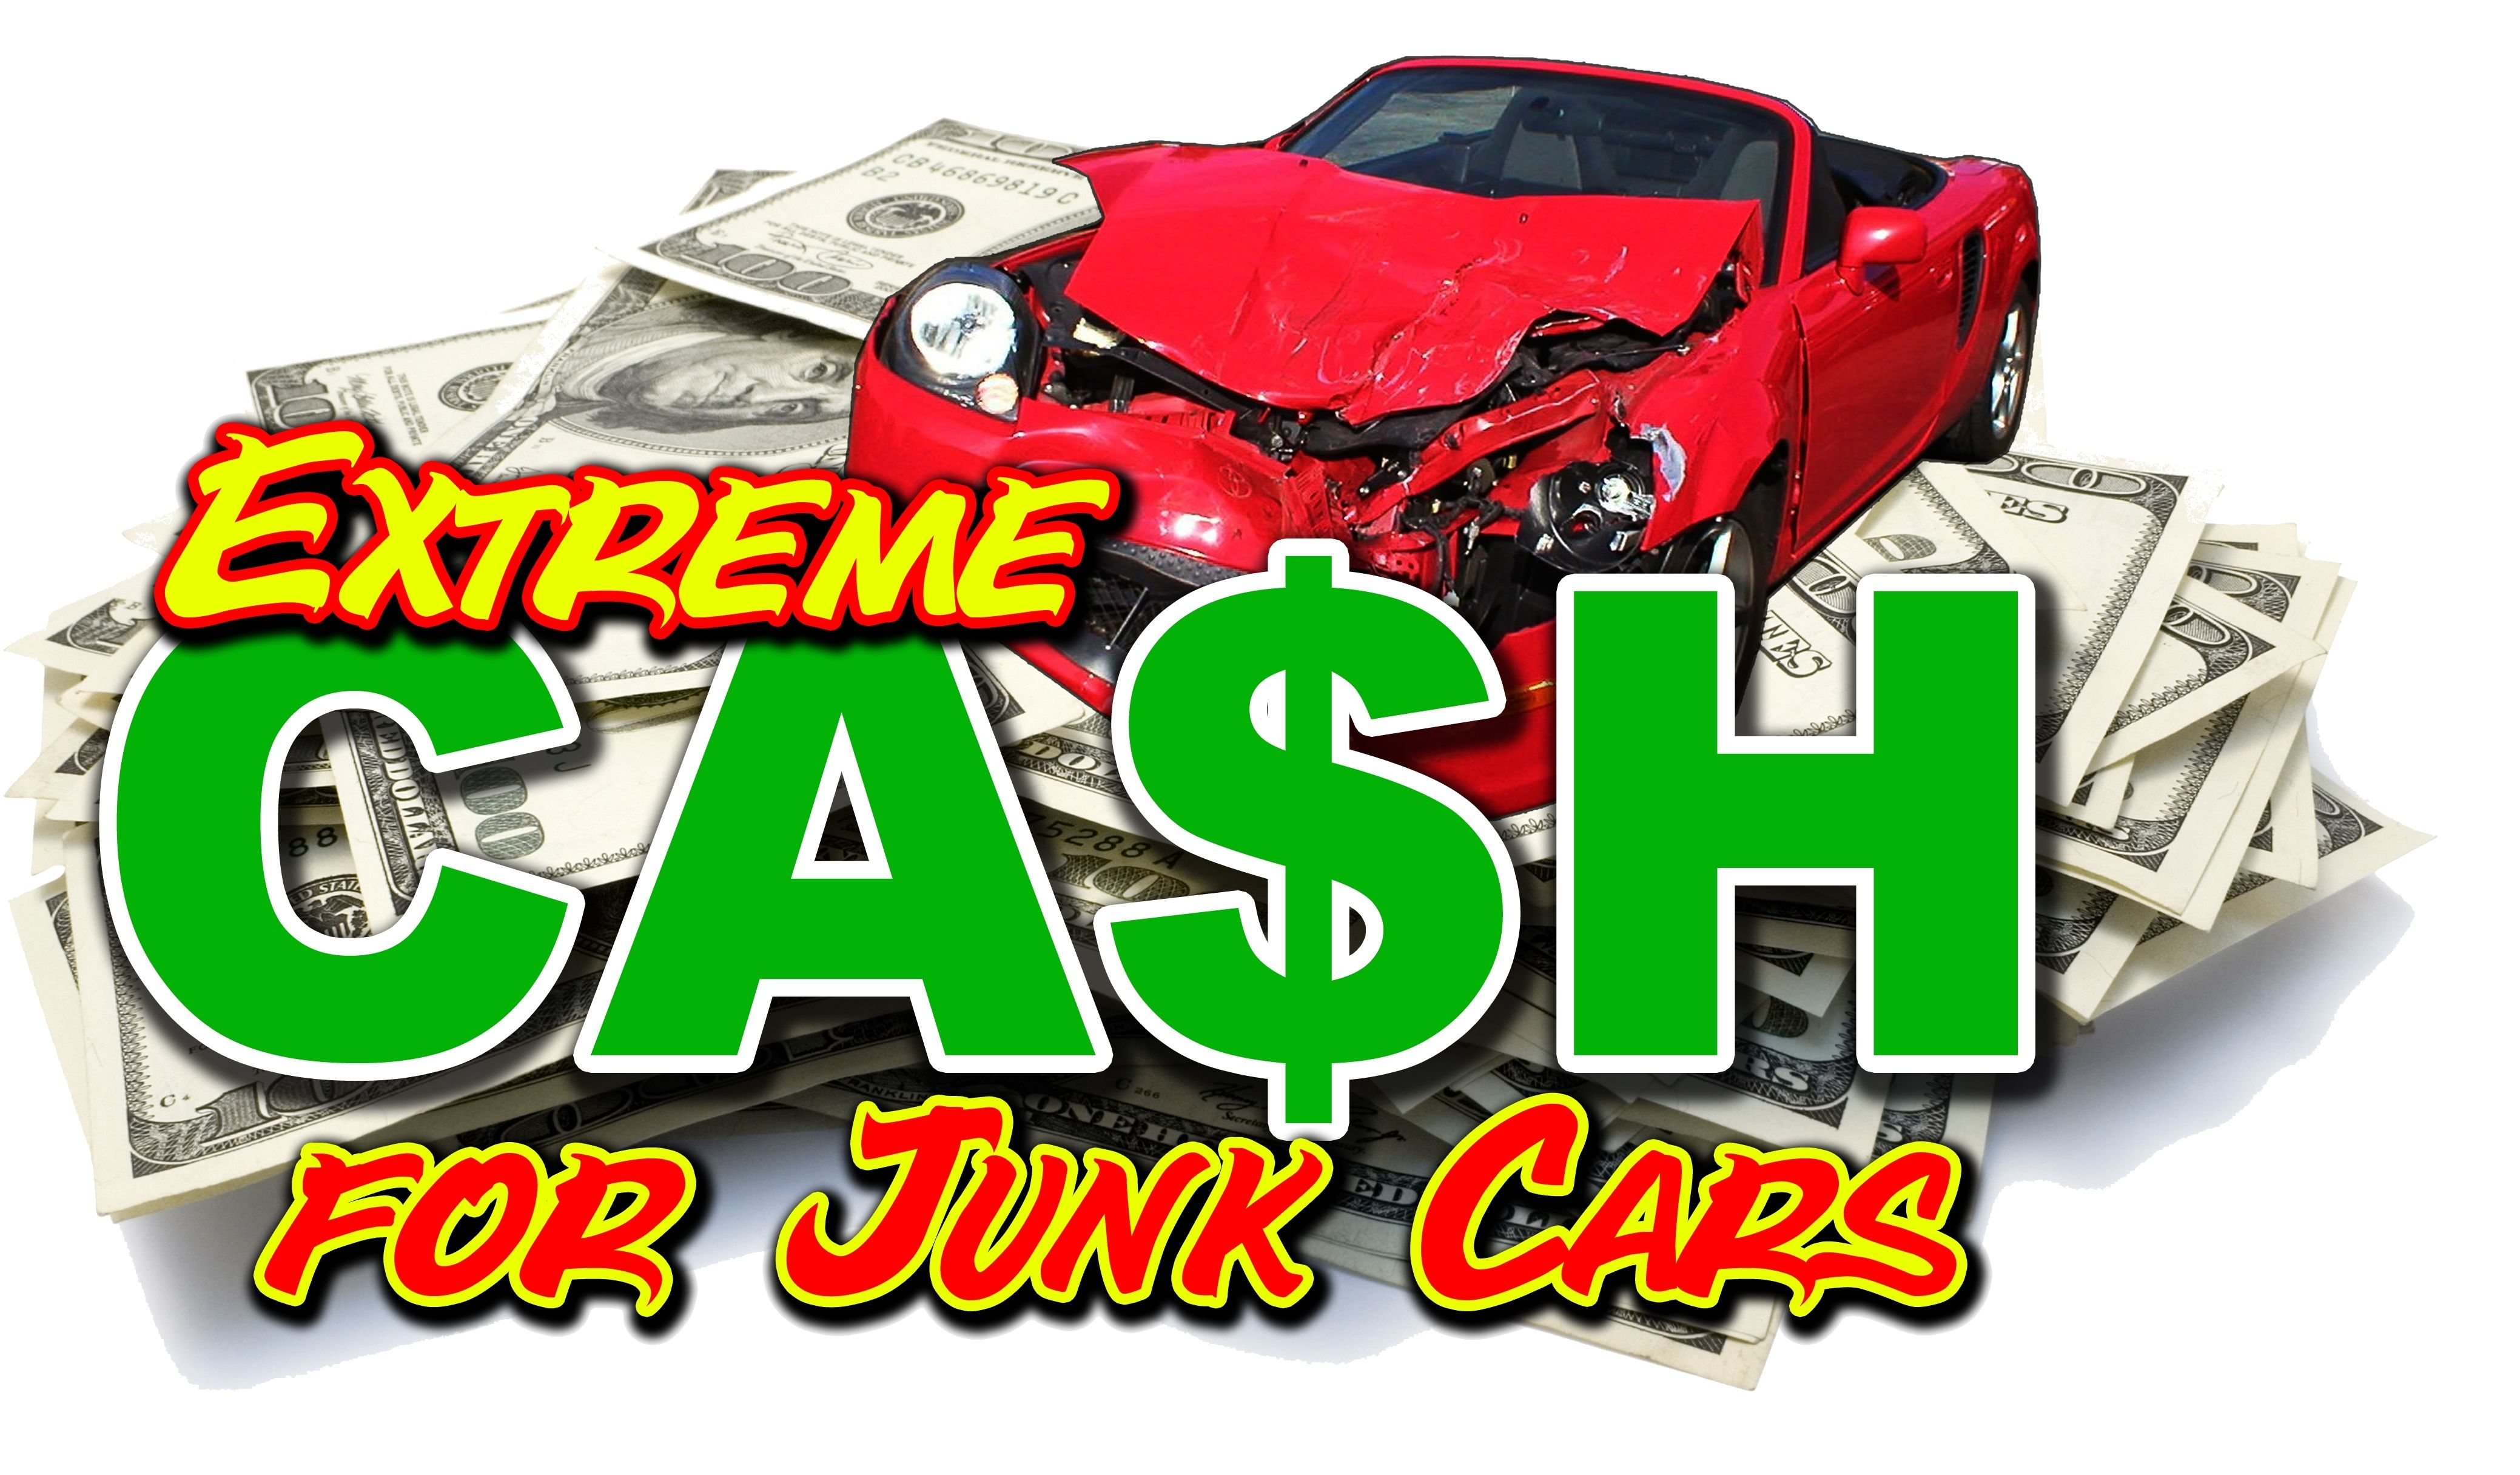 Junk Cars Wanted Desperately: Call Us at 1-888-712-2774 and Ask for ...